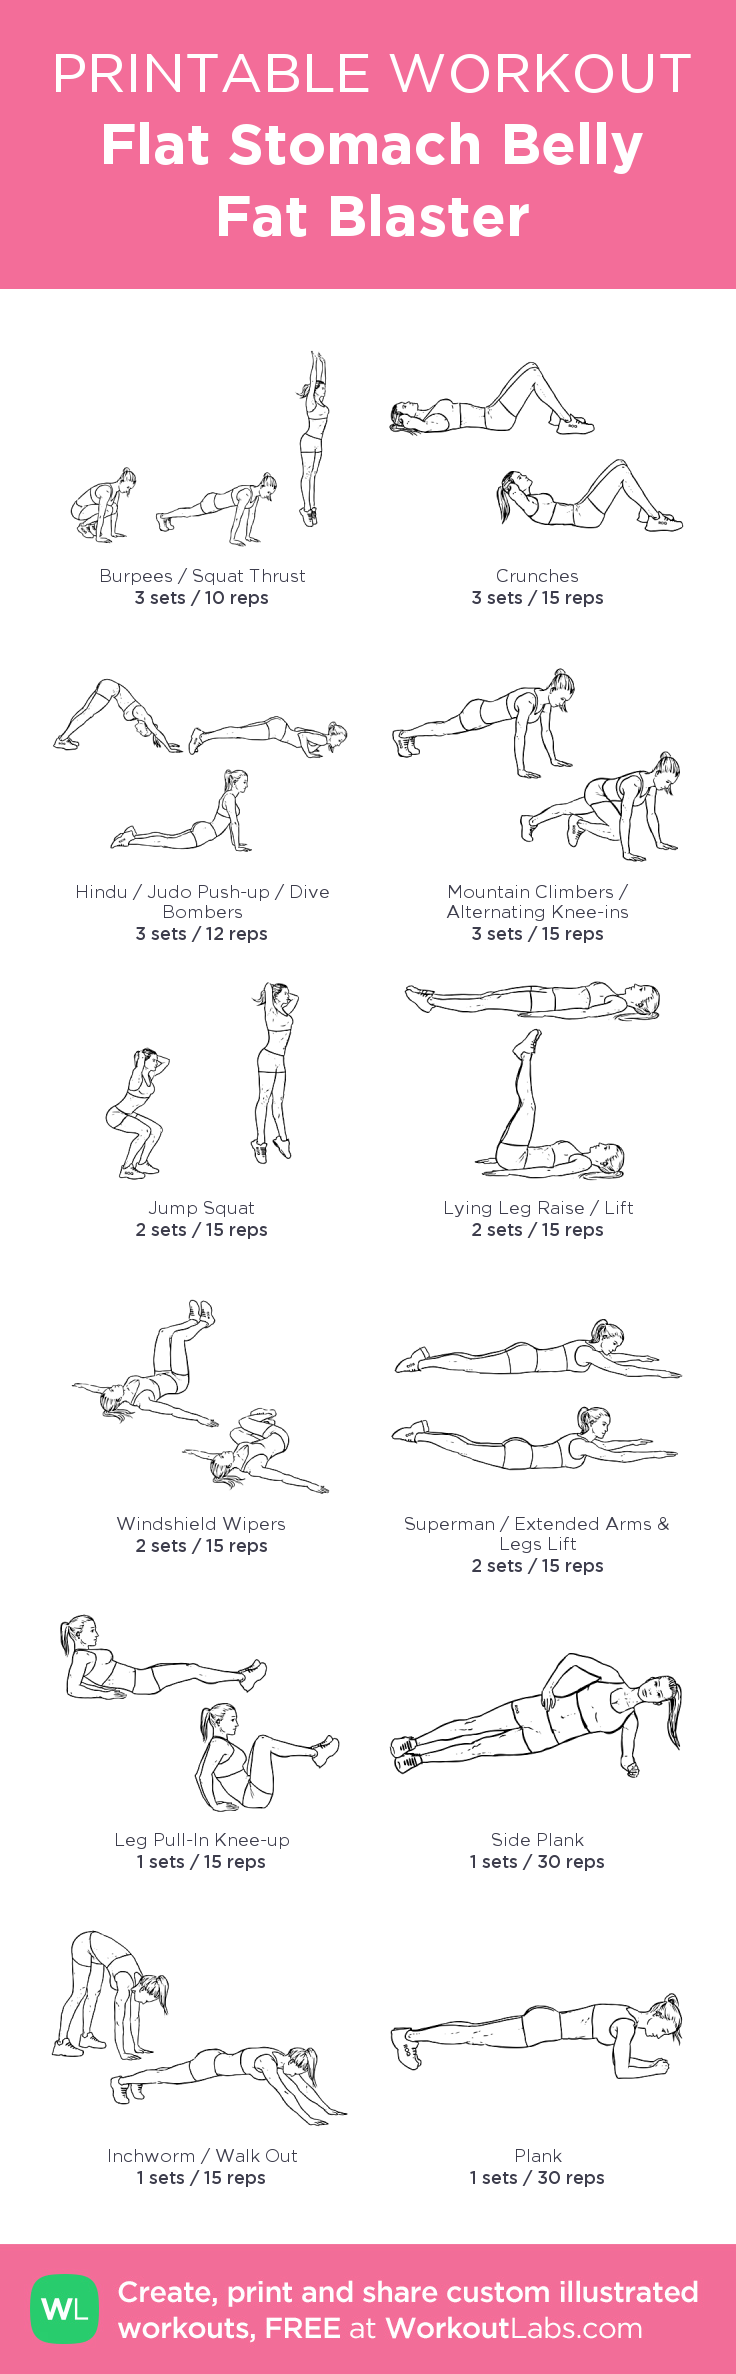 Flat Stomach Belly Fat Blaster:my visual workout created at WorkoutLabs.com • Click through to customize and download as a FREE PDF! #customworkout